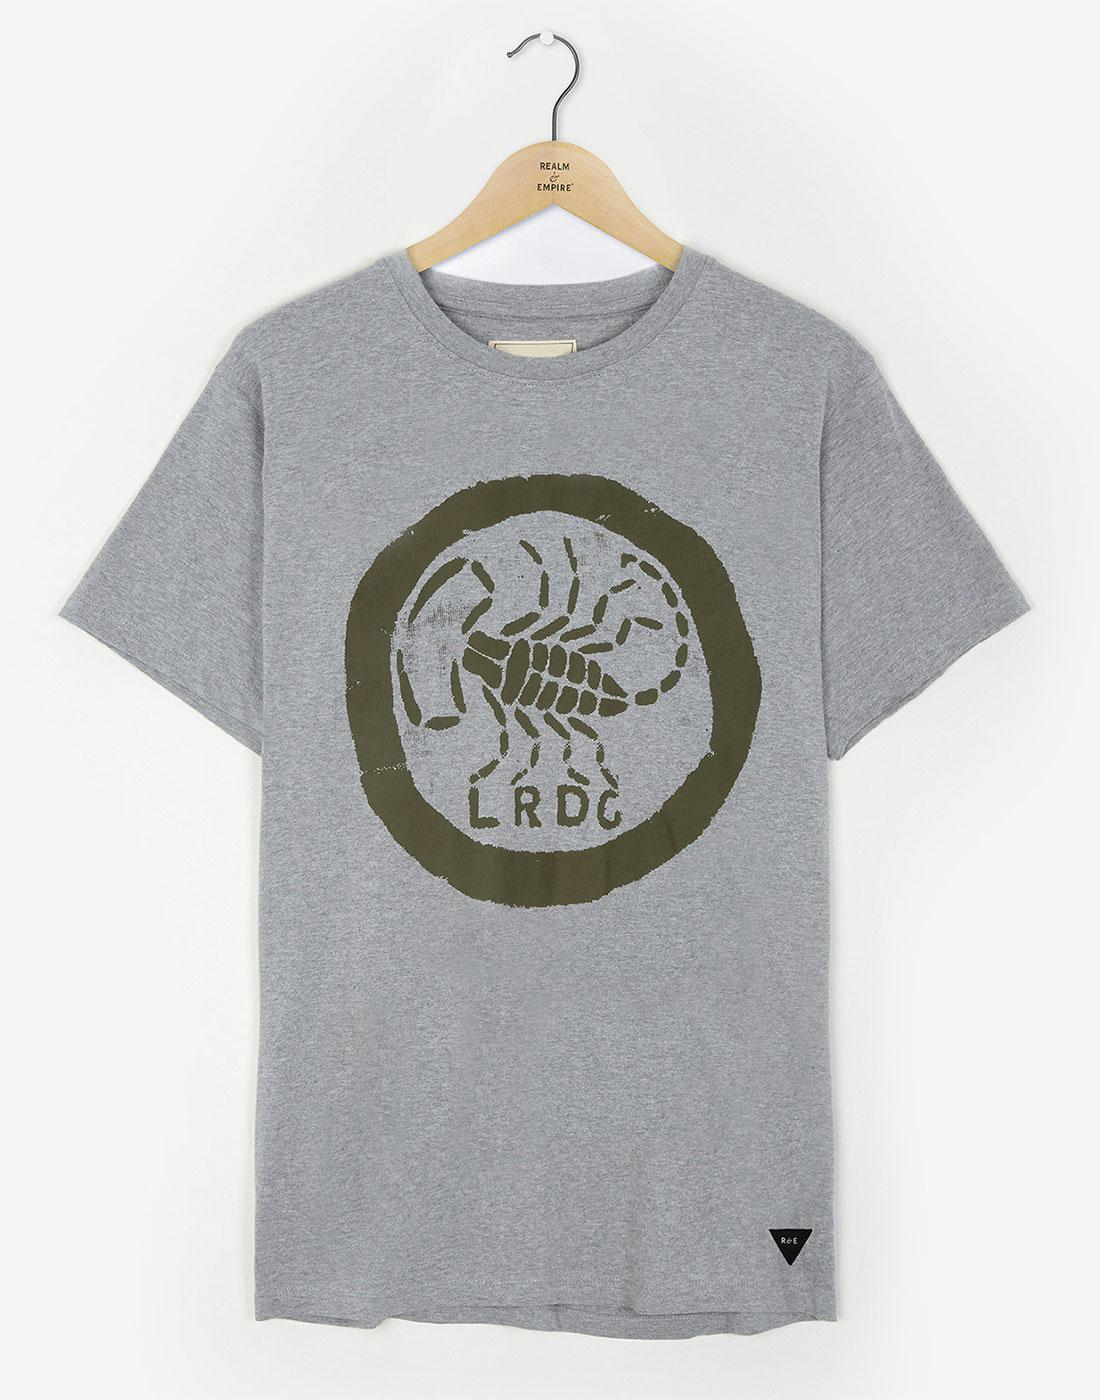 LRDG Scorpion REALM & EMPIRE Retro Logo T-shirt